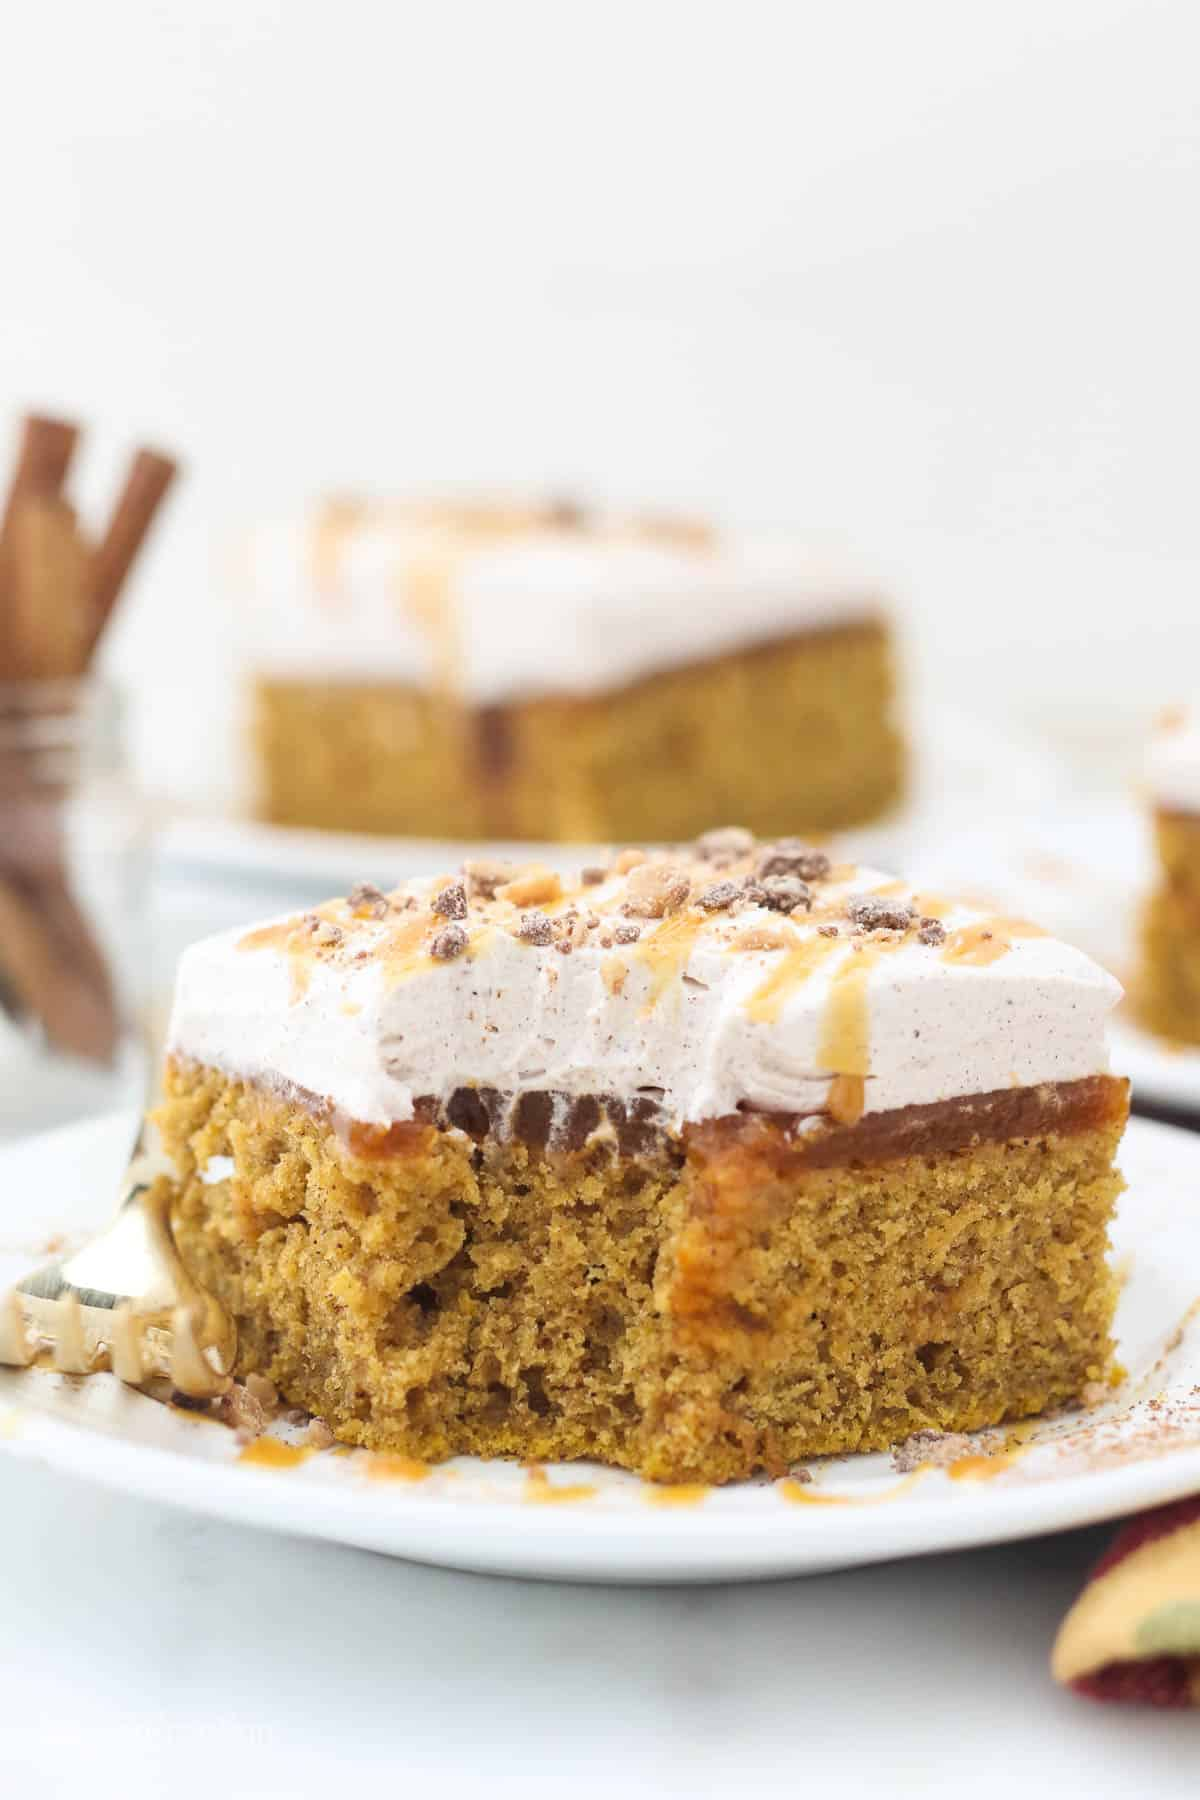 A pretty slice of pumpkin cake with a big bite missing, showing the inside of the cake.